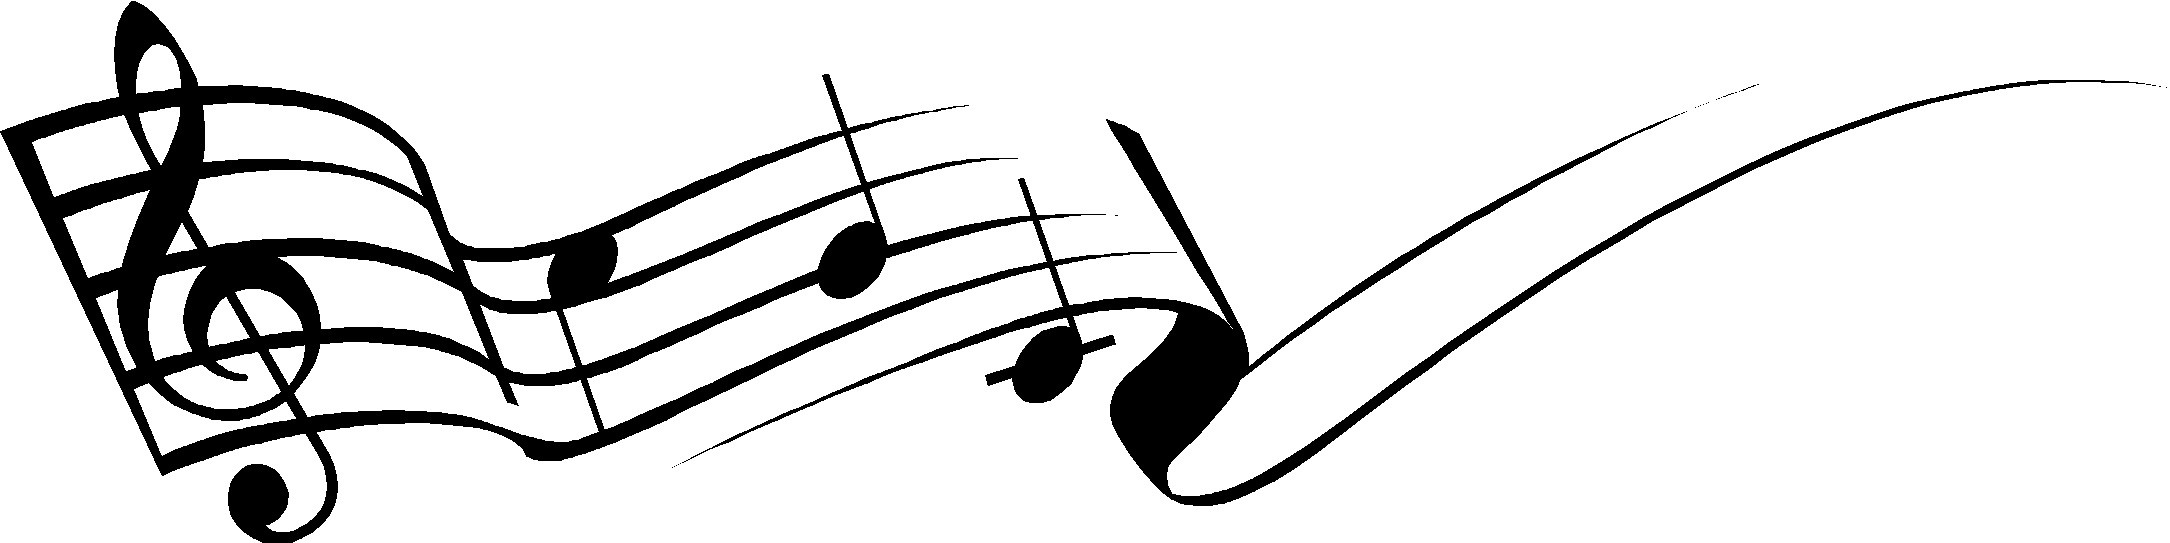 Free black and white musicians bow clipart banner library White Music Notes | Free download best White Music Notes on ... banner library